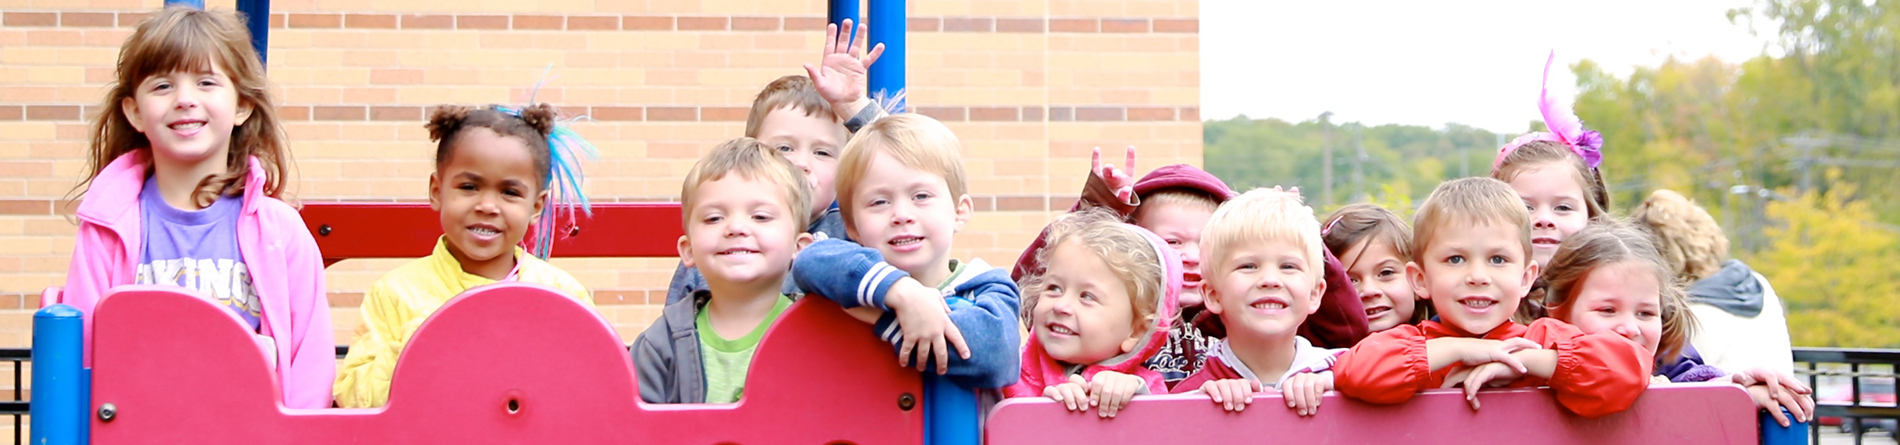 preschool students playing on the playground